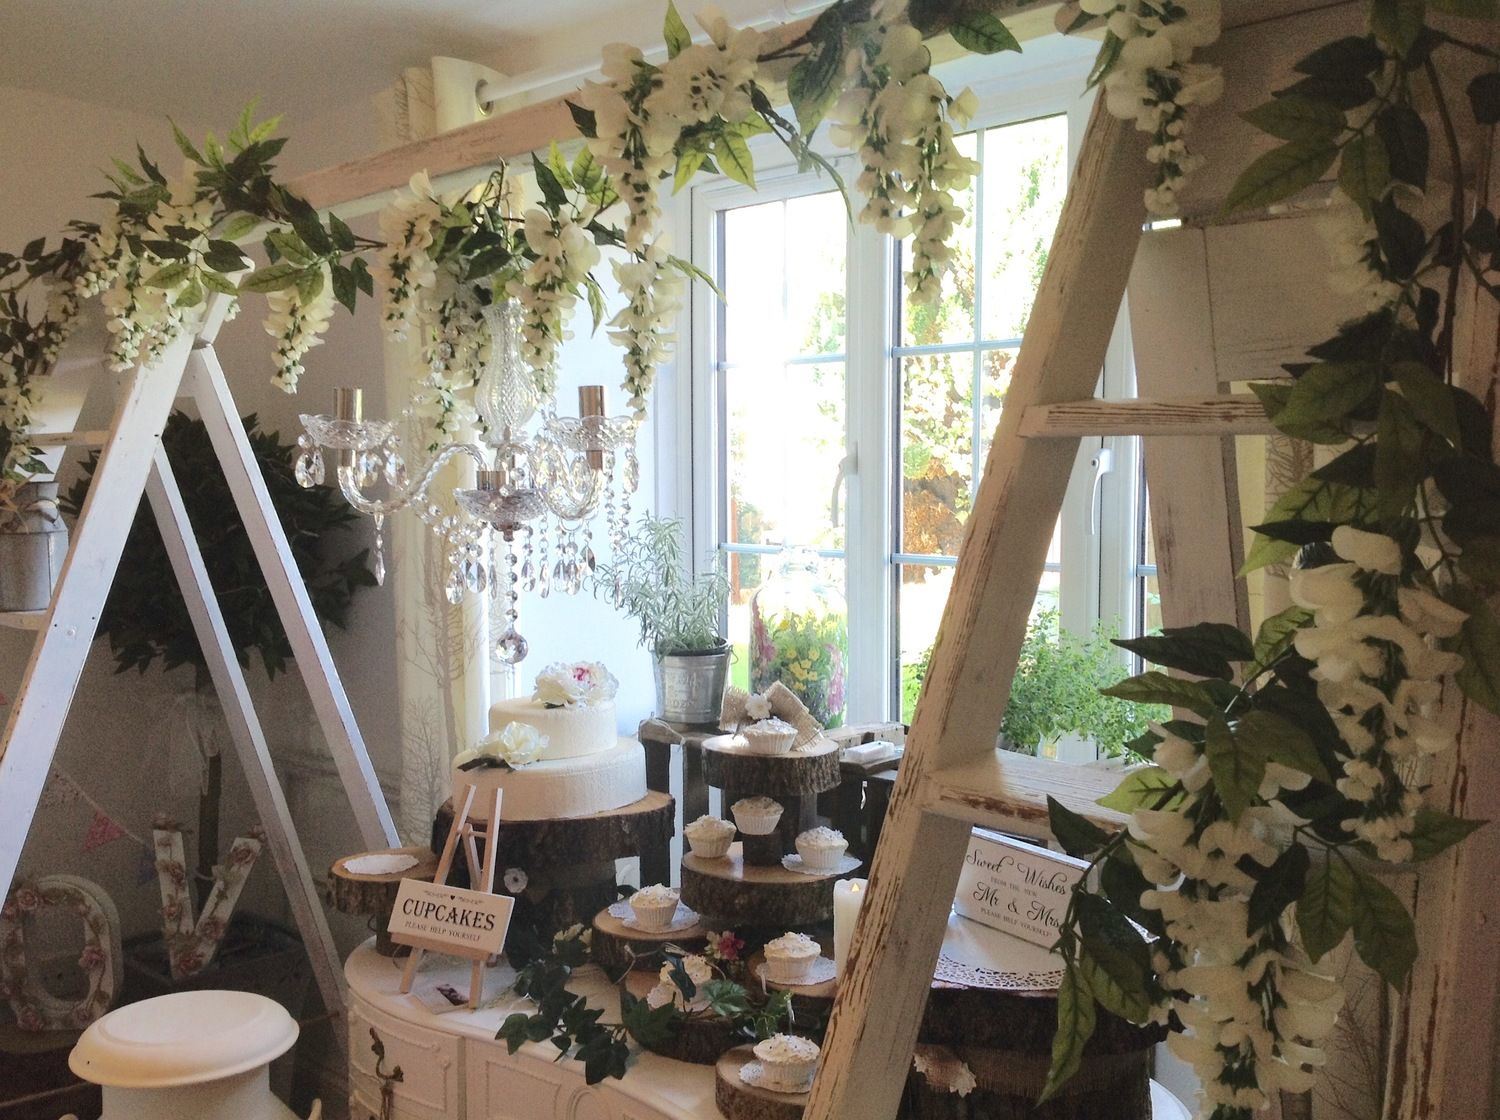 Wedding And Event Hire Yeovil Diy Arch Arbour Country Chic With Vintage Ladders Chandelier